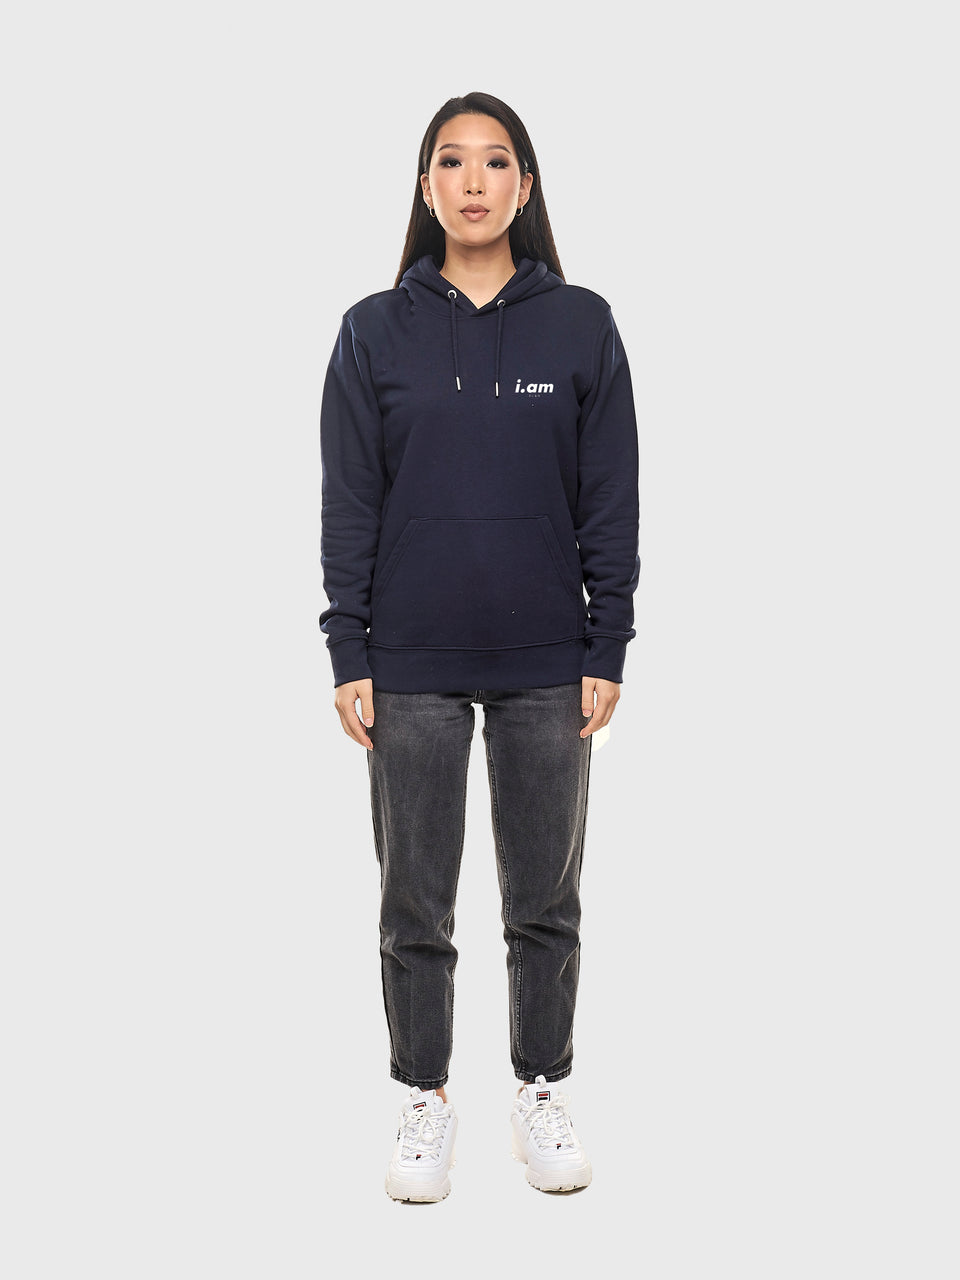 Making it - Navy - Unisex pull over hoodie